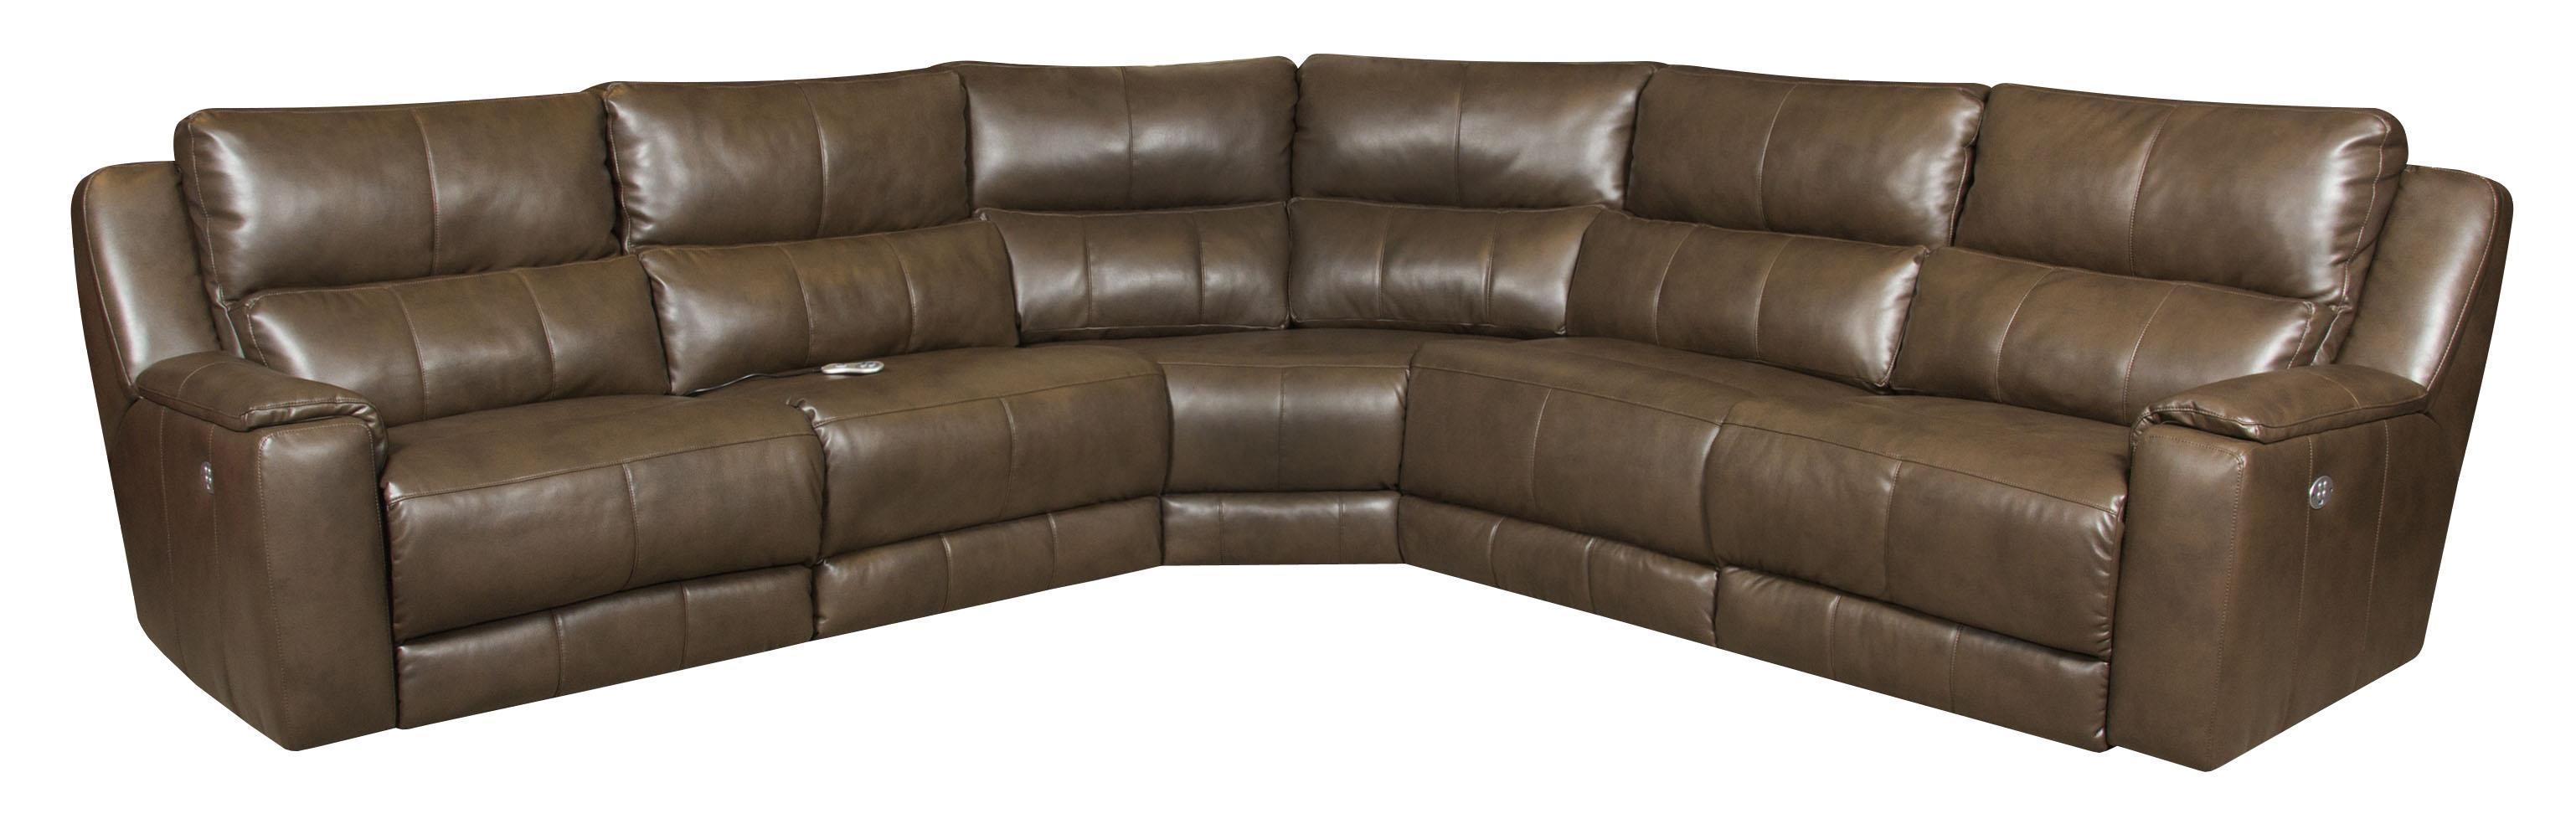 Southern Motion Dazzle Reclining Sectional Sofa With 5 Seats And Regarding Leather Motion Sectional Sofa (View 19 of 20)